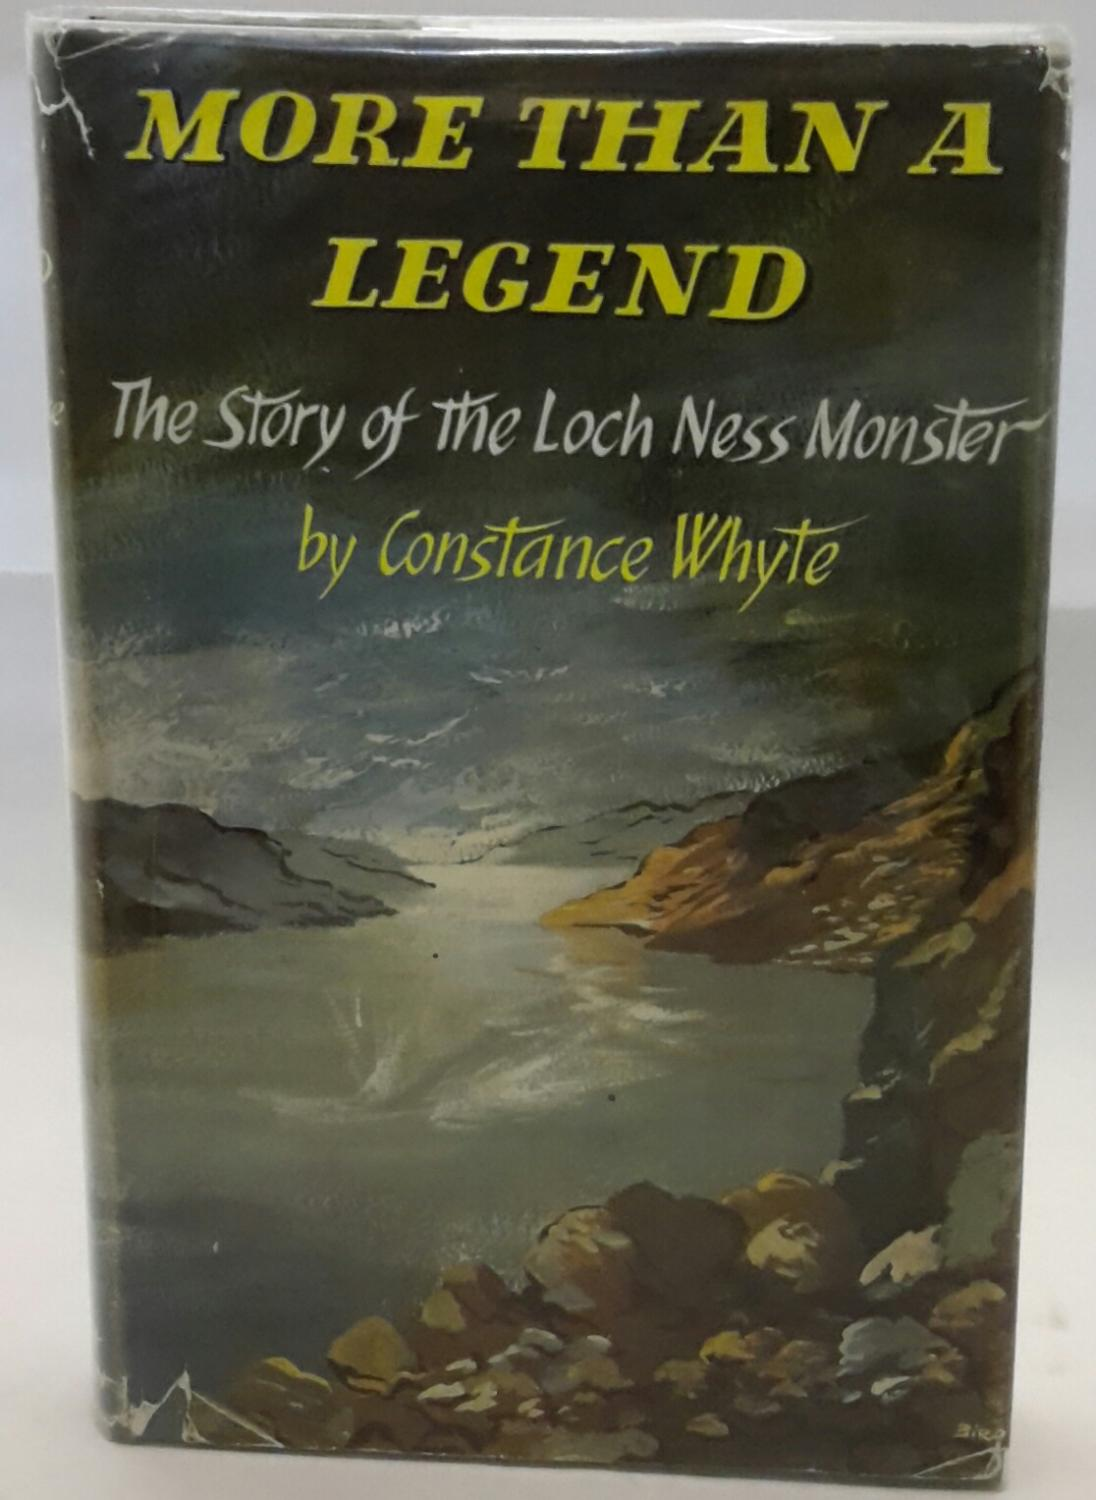 the loch the legend and the monster Loch ness monster is considered a legend because it is a popular story that hasn't been verified in this specific case there aren't authenticated evidence to proof the existence of the monster there are some stories of people and pictures , but a scientific validation is missing to consider the monster is real.